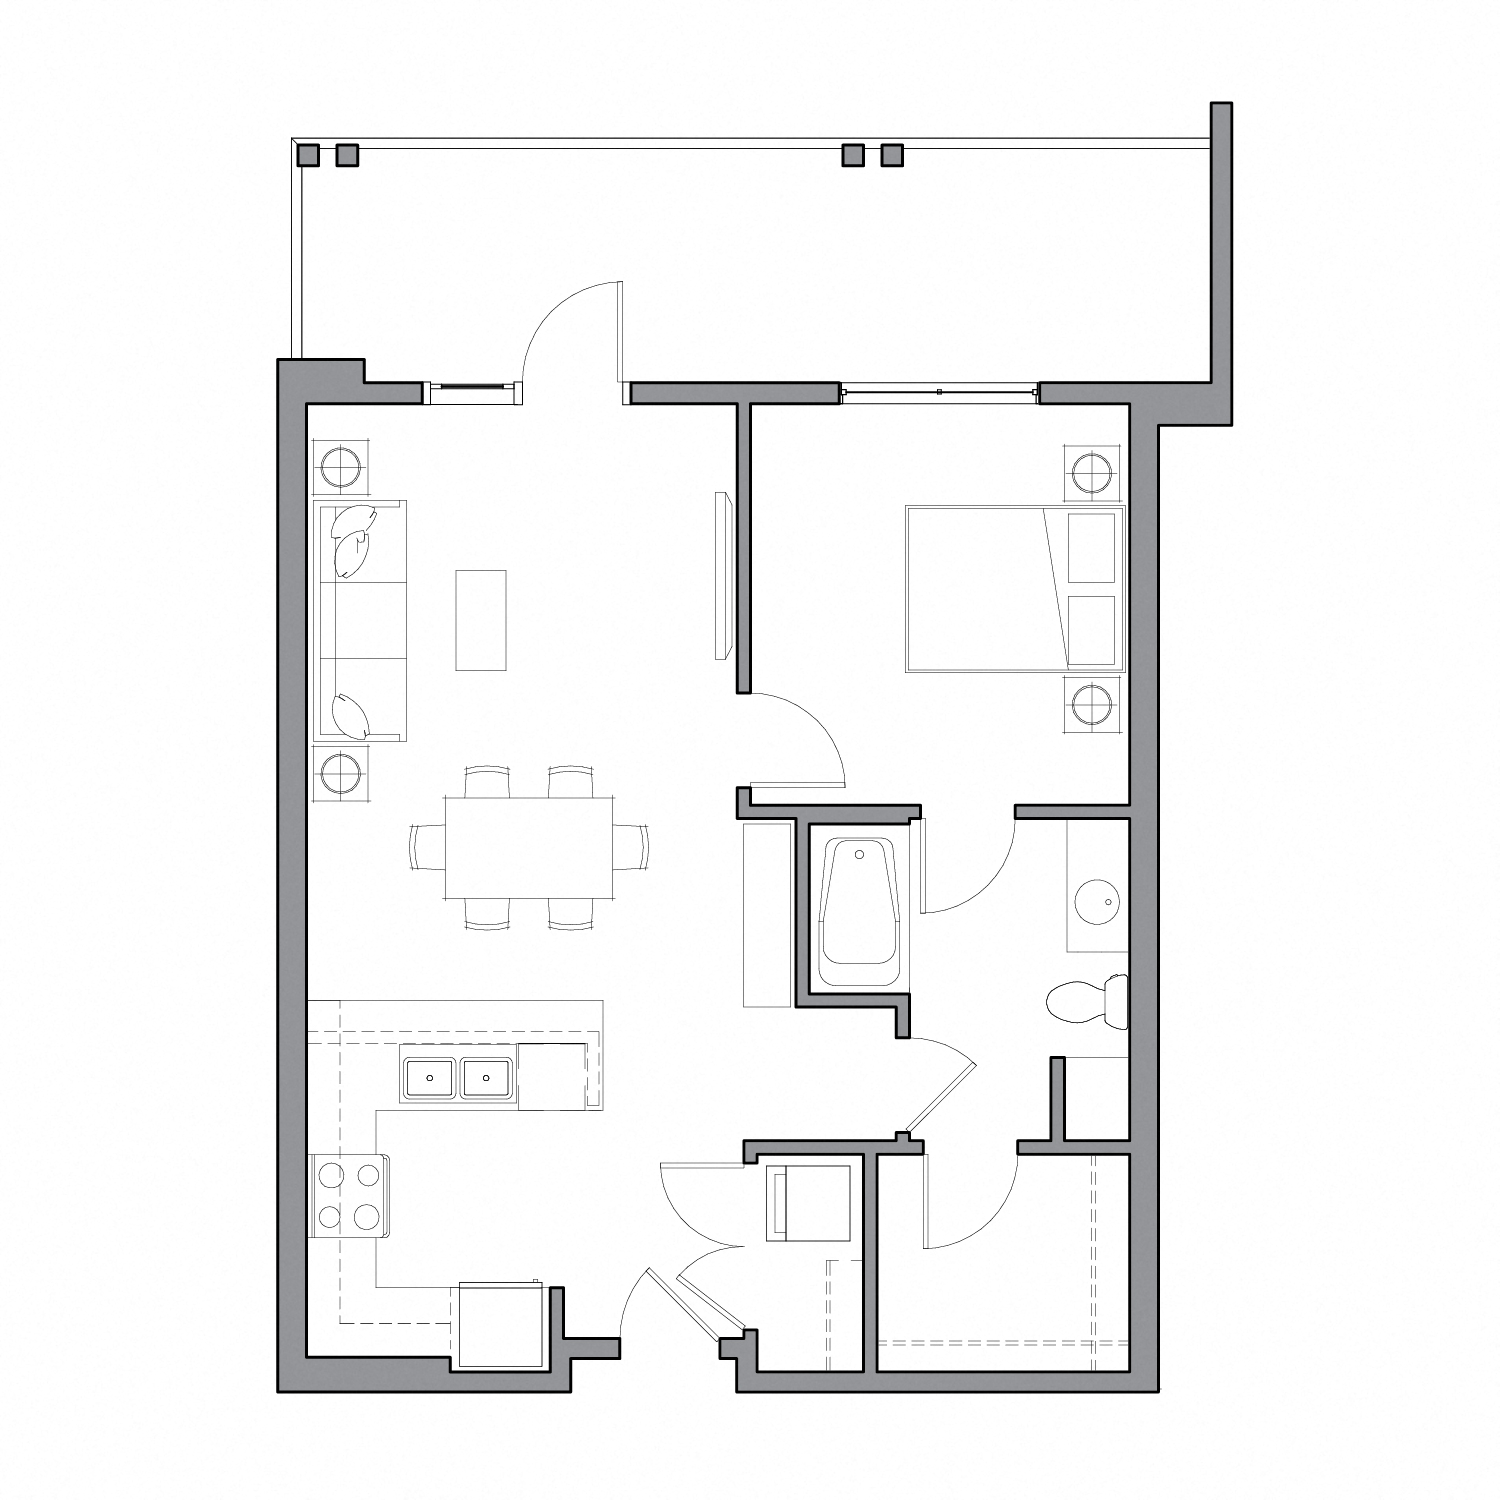 Floor plan diagram with one bedroom, one bathroom, an open kitchen dining and living space, and a large patio